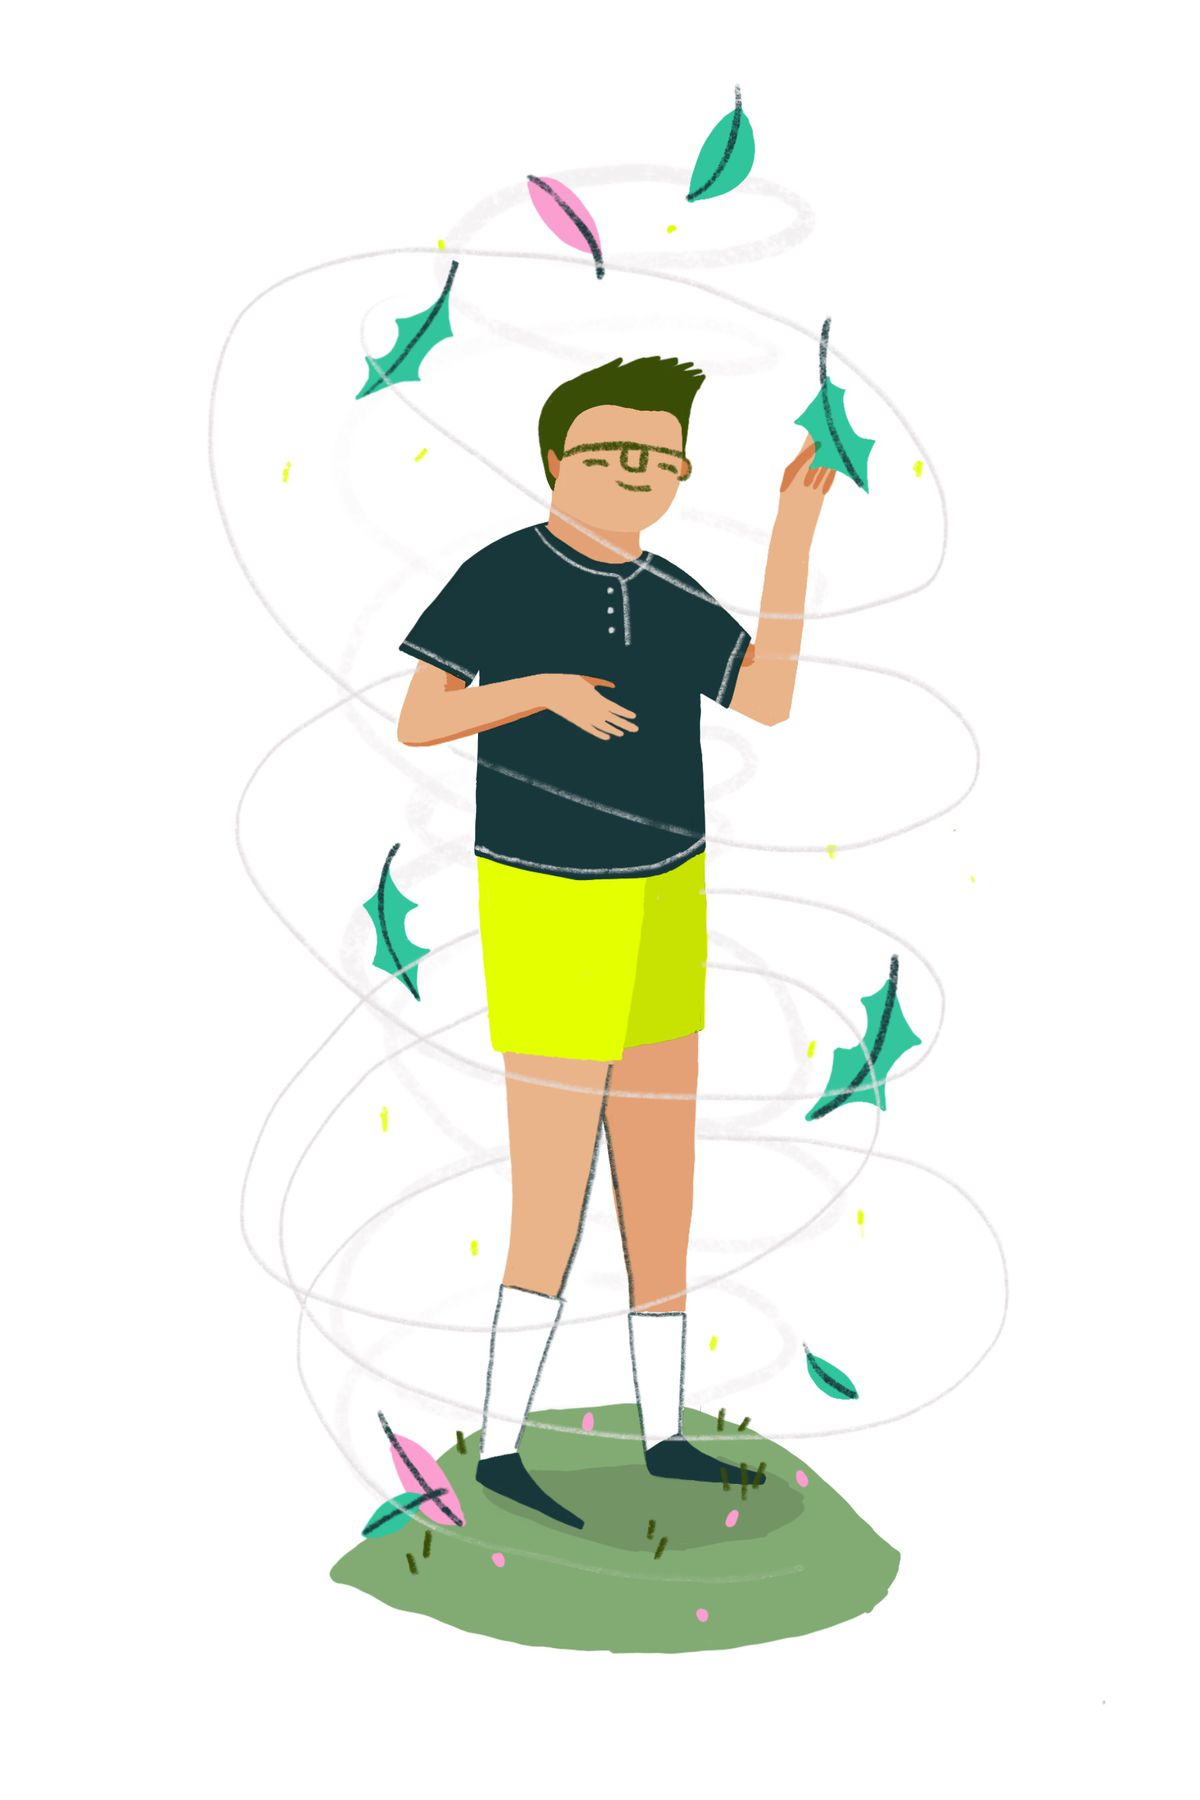 A smiling child in yellow shorts surrounded by a gust of wind and leaves. He's playfully grabbing a leaf from the air. Illustration.